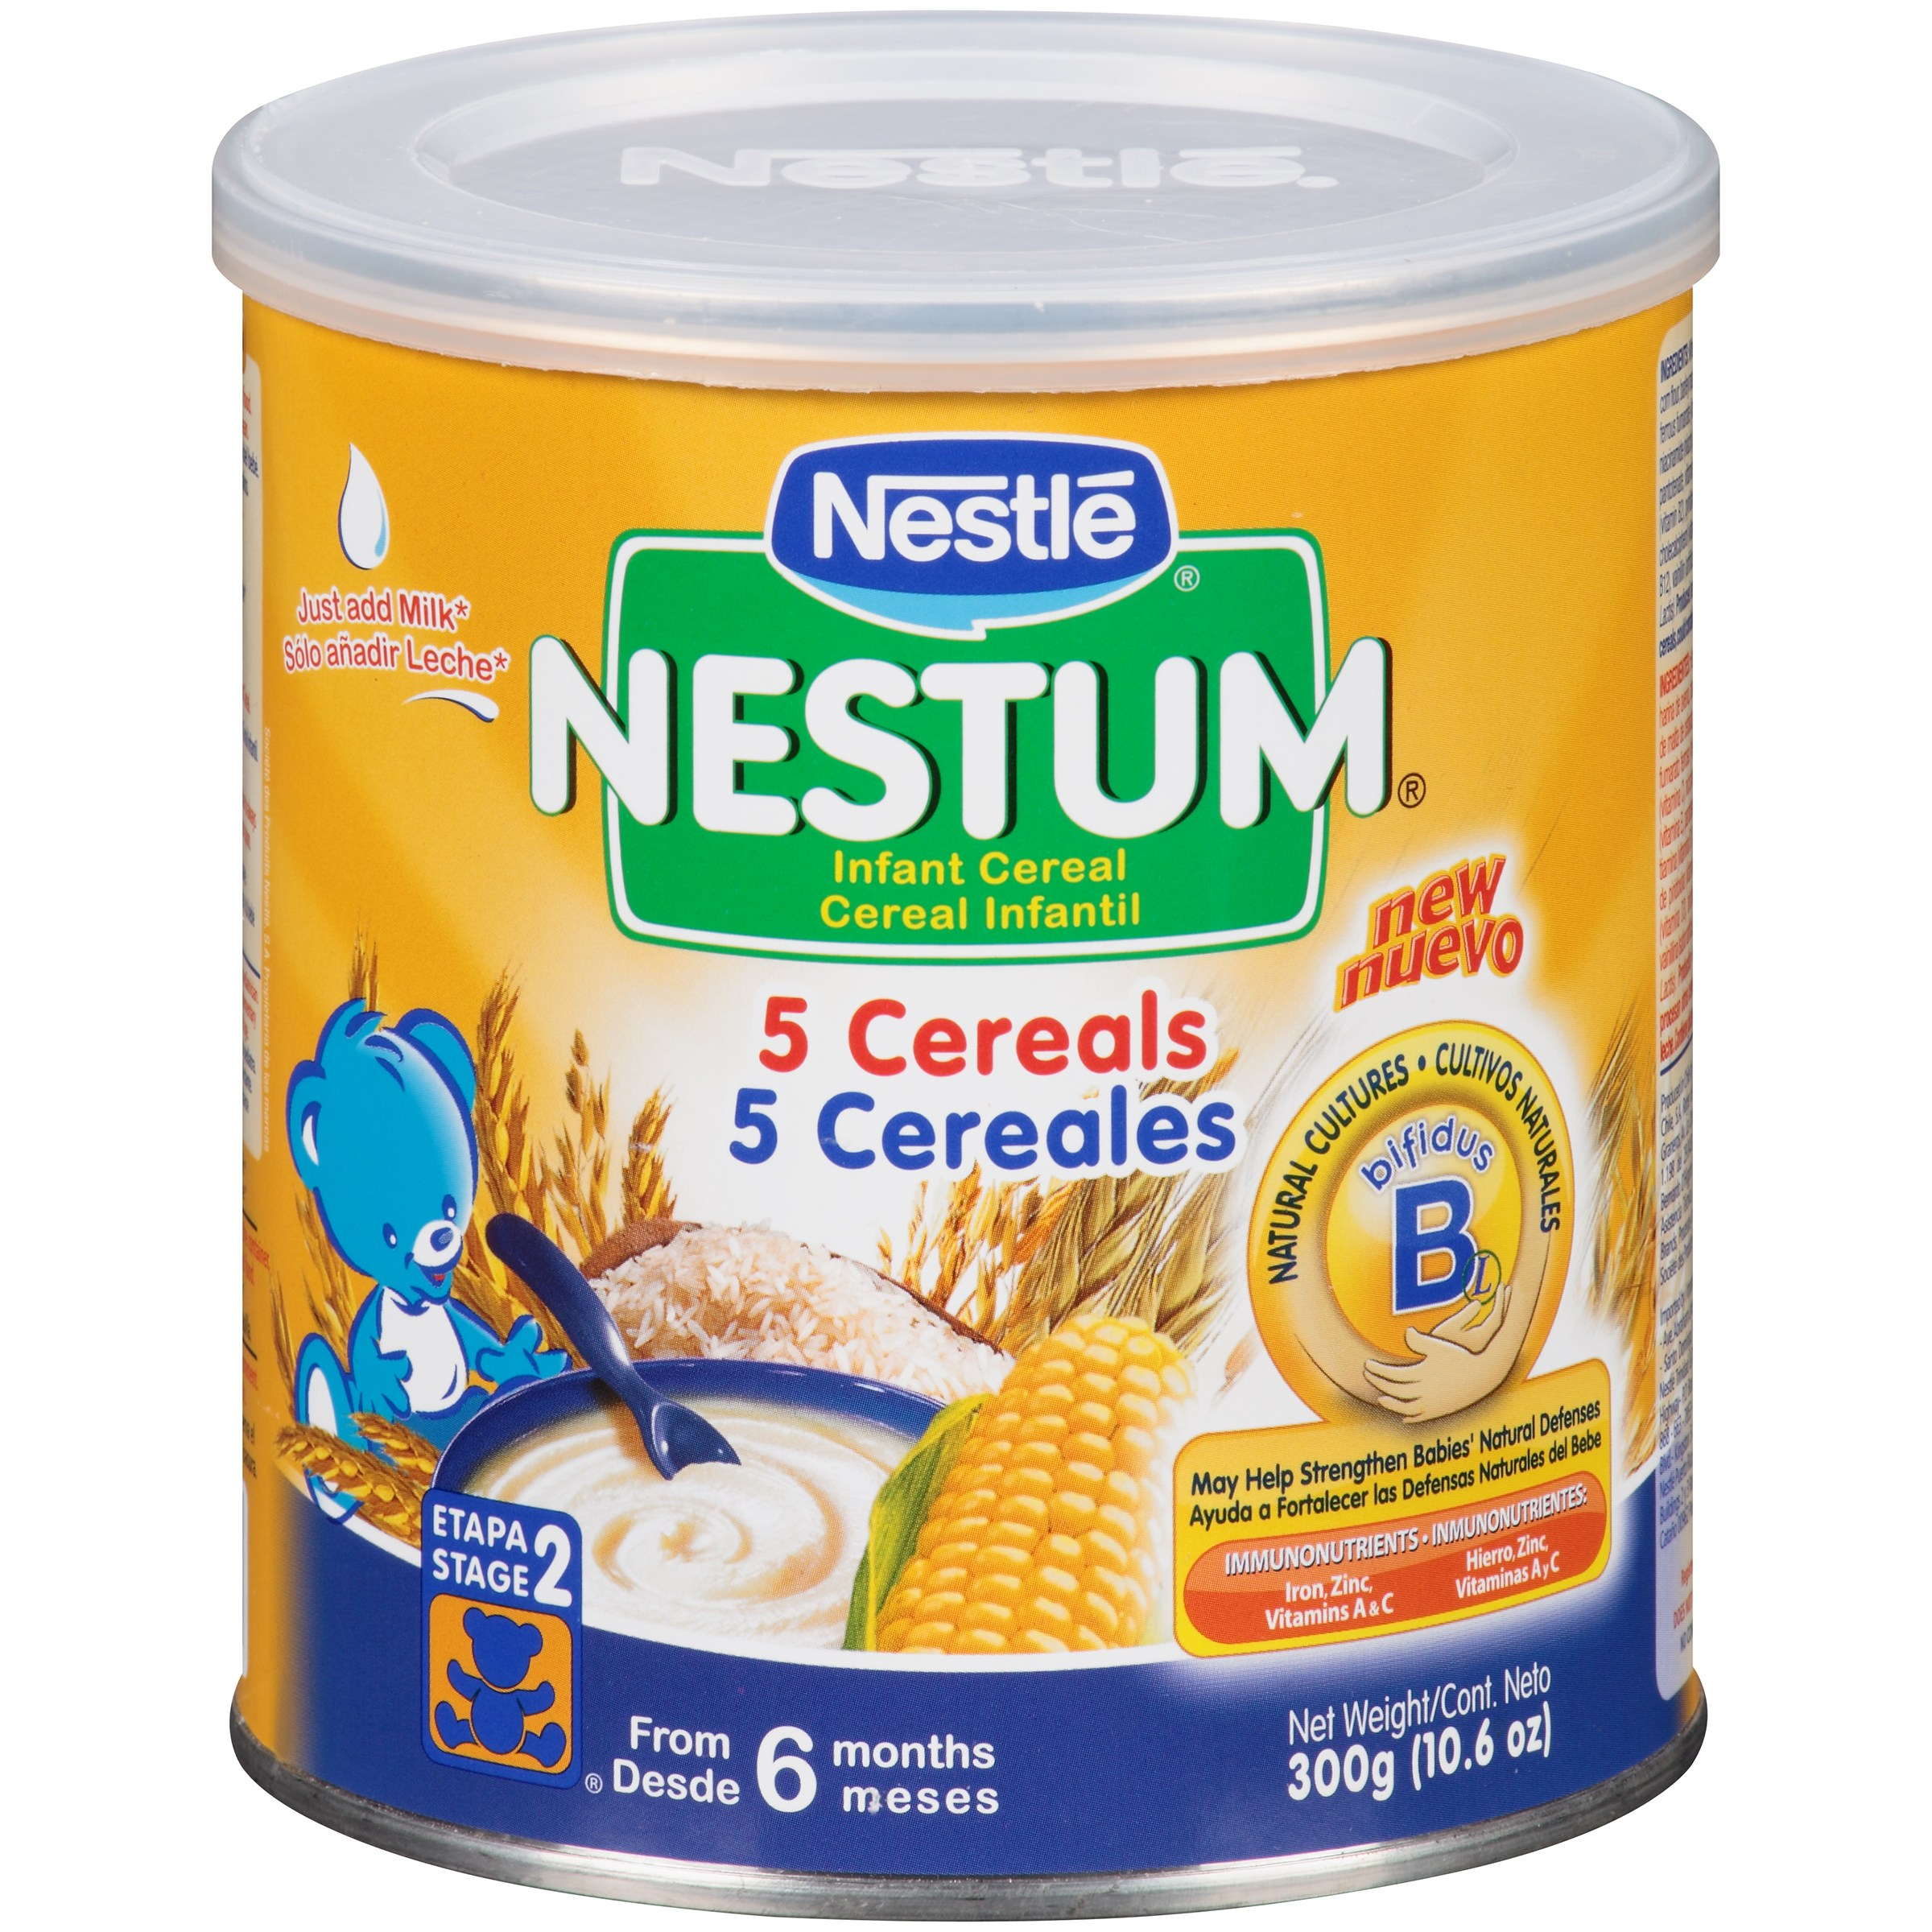 Nestle® Nestum® 5 Cereals Infant Cereal 10.6 oz. Canister